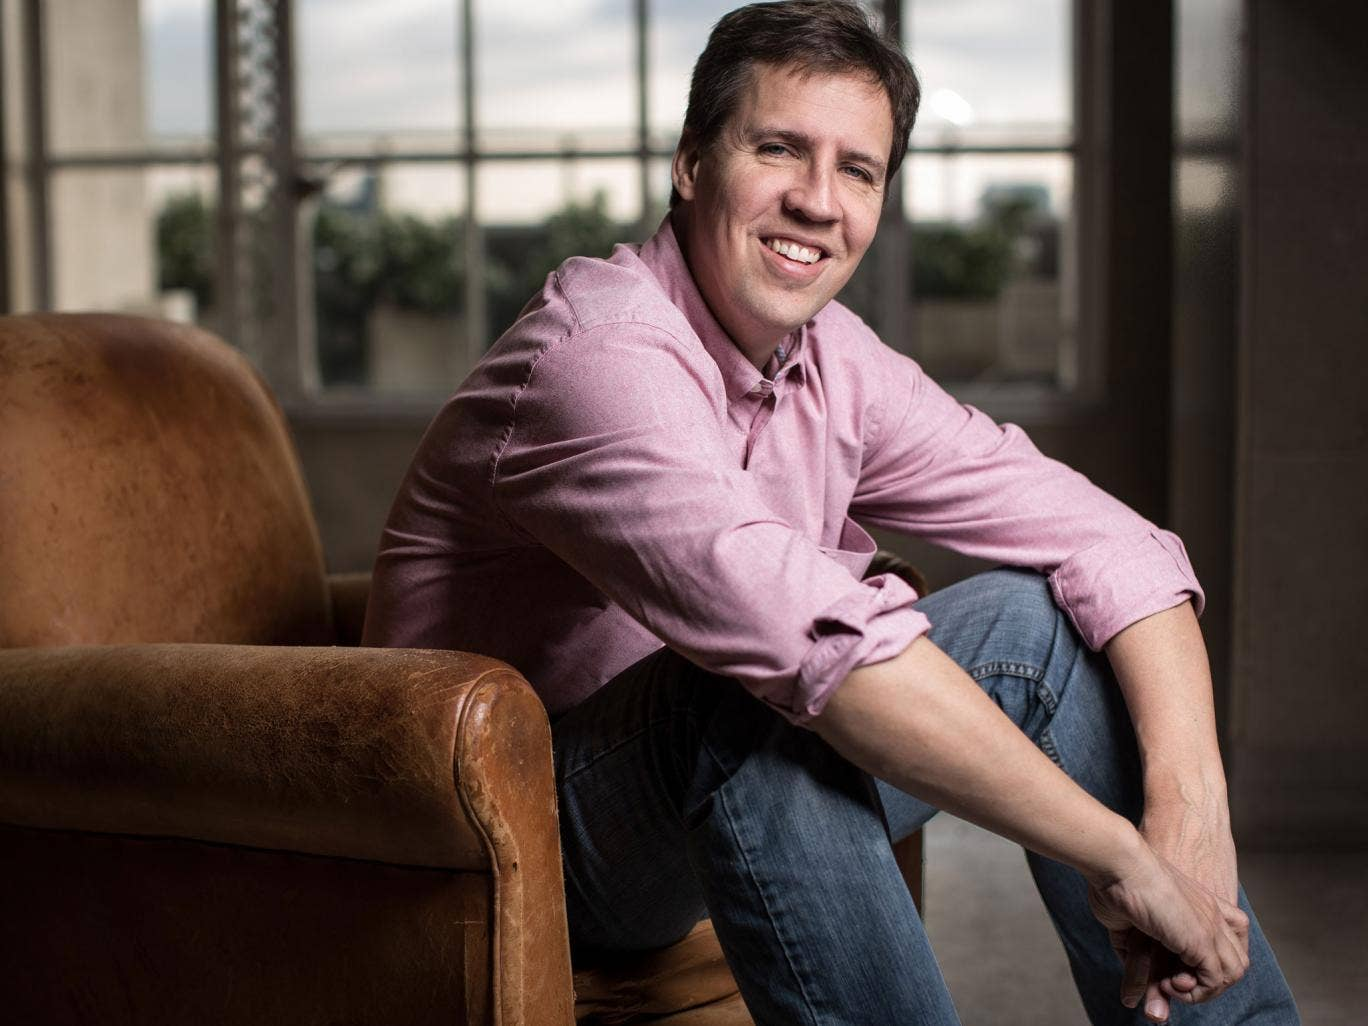 Jeff Kinney, author